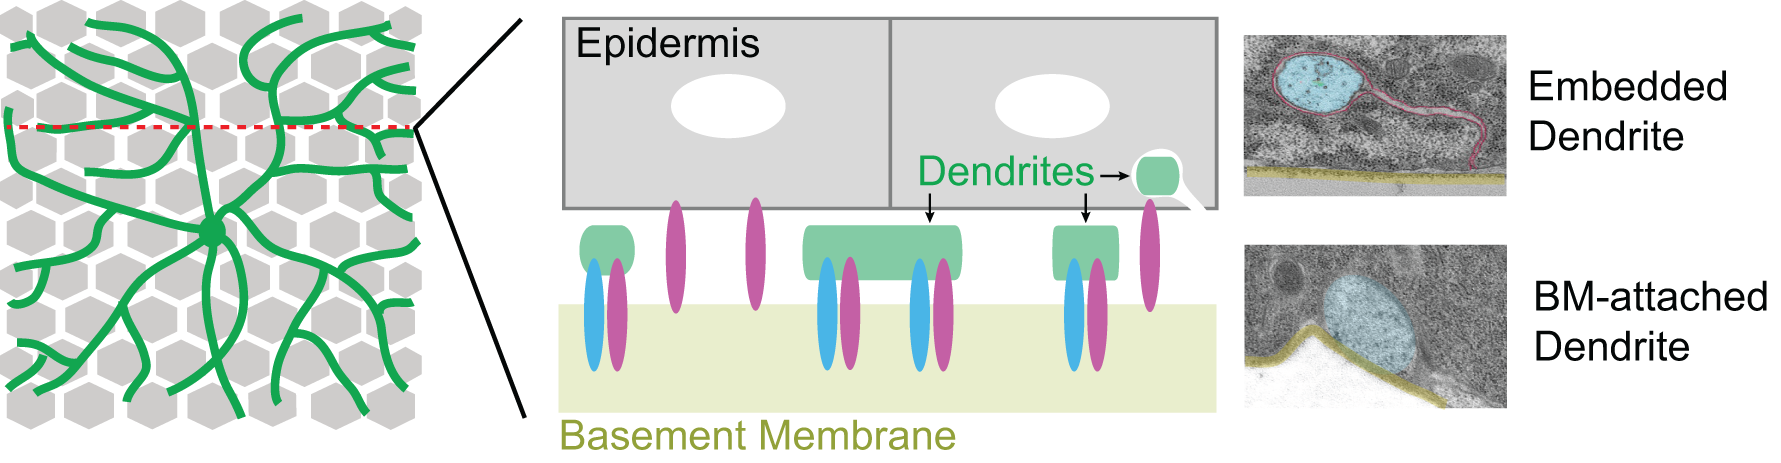 Drosophila  larval sensory dendrites (green) grow over a monolayer of epithelial cells (gray) in a mostly two-dimensional plane, attached to a collagen-rich basement membrane (BM, tan) along the basal surface of epithelial cells by virtue of neuronal Integrin (magenta) and Ret (blue). The basement membrane is likewise tethered to the epidermis by epithelial Integrins. The majority of dendrites are positioned at the basal plasma membrane of epithelial cells (BM-attached dendrites; shown at high magnification in a TEM micrograph at right), but a small portion of dendrites become embedded in the epidermis.